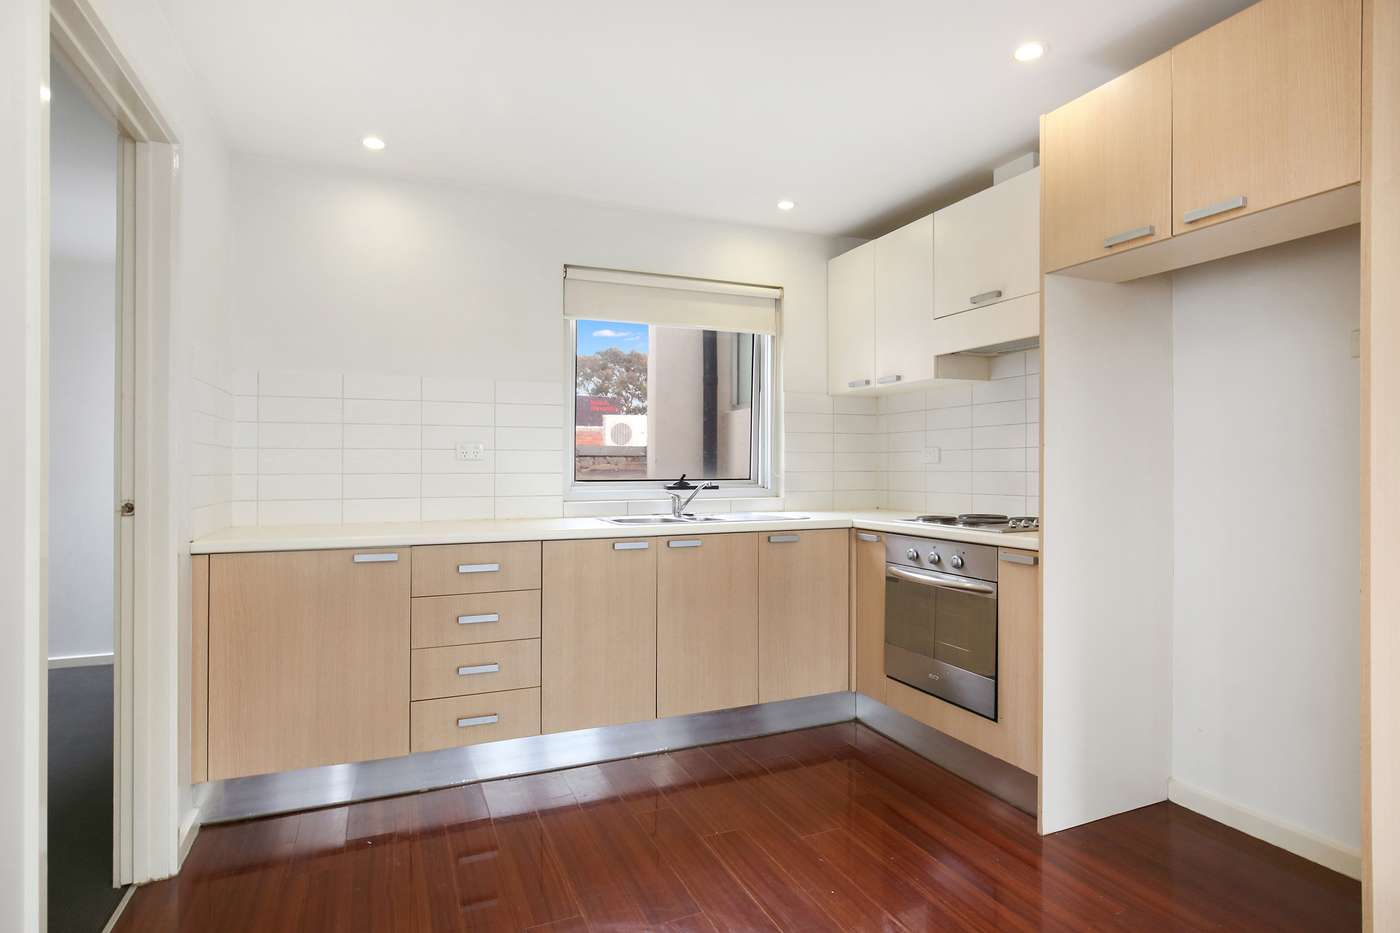 Main view of Homely apartment listing, 7/261-263 Broadway, Reservoir, VIC 3073